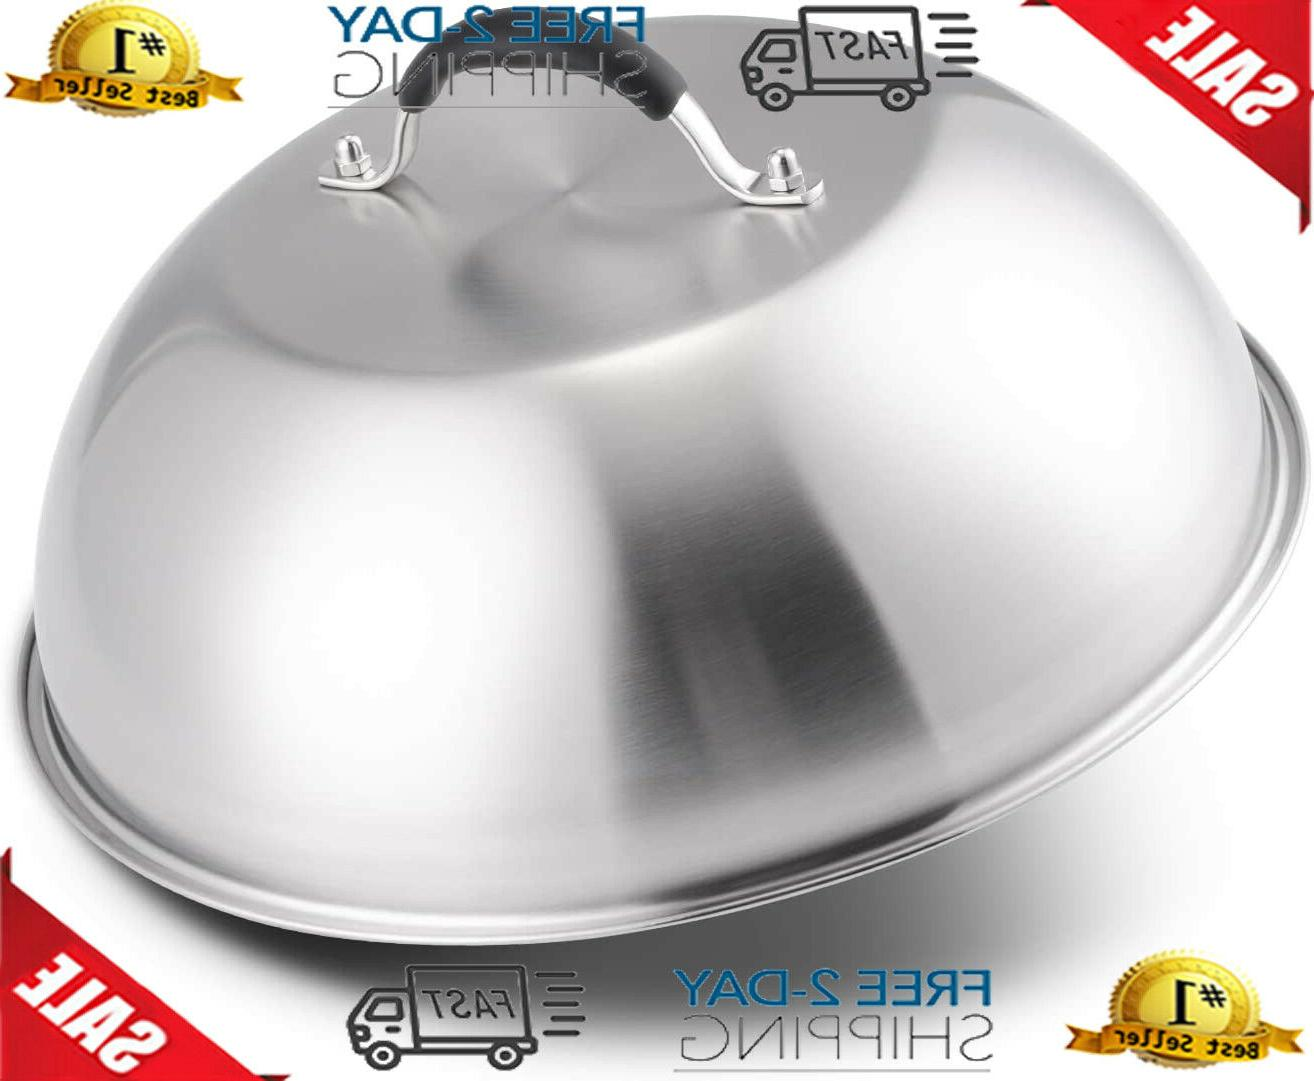 12 inch round basting cover stainless steel